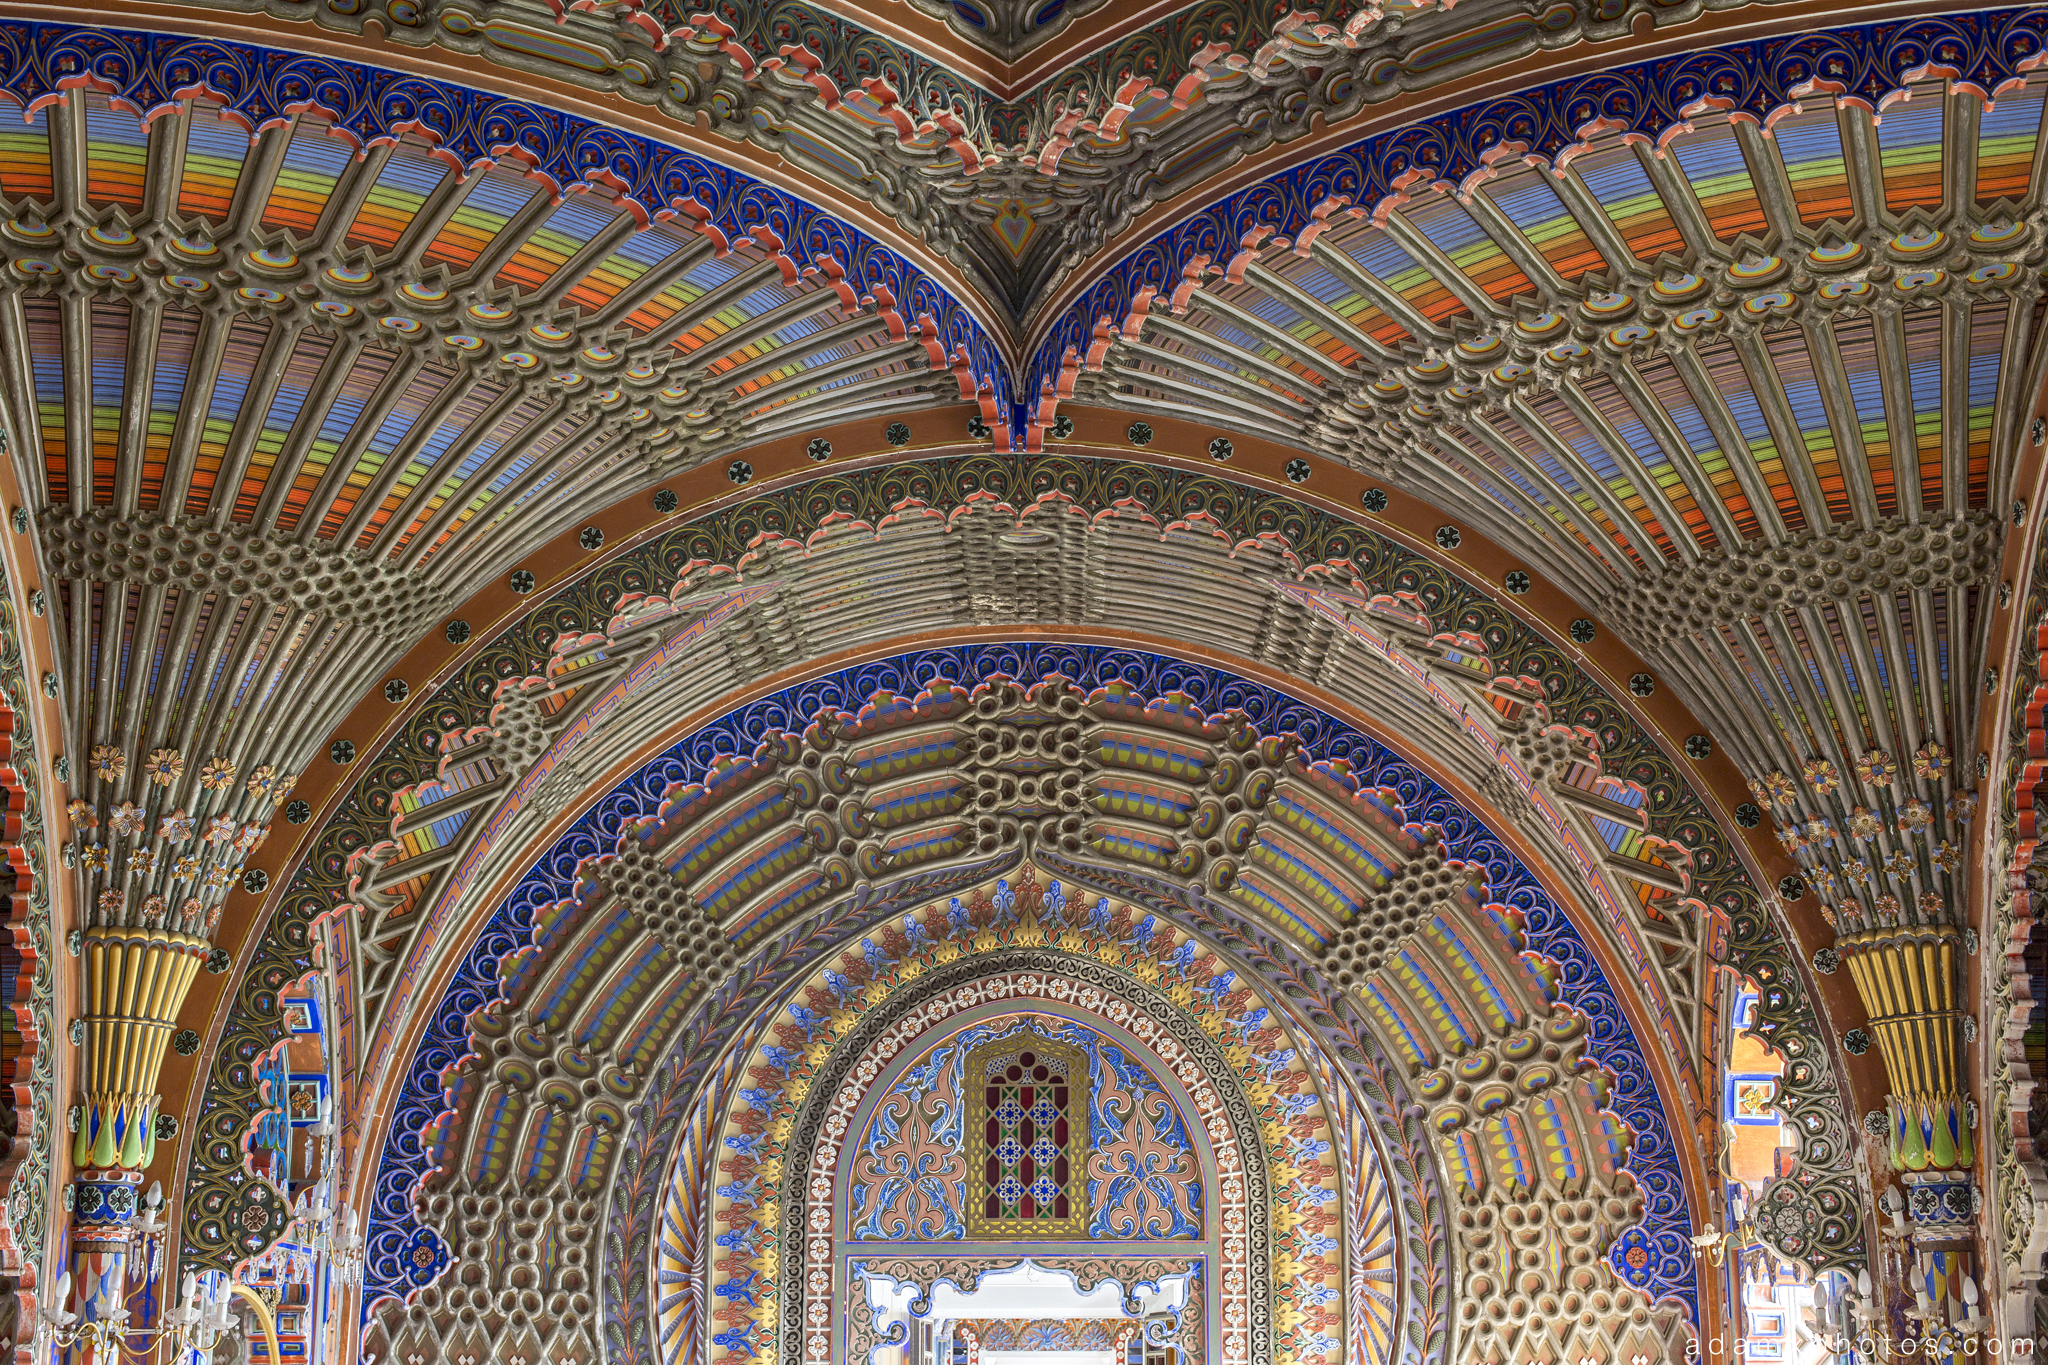 Peacock Room detail ceiling fans tiles colours Non Plus Ultra Fairytale Castle of Sammezzano Castello di Sammezzano Urbex Adam X Urban Exploration photo photos report decay detail UE abandoned Ornate Moorish tiling tiled derelict unused empty disused decay decayed decaying grimy grime